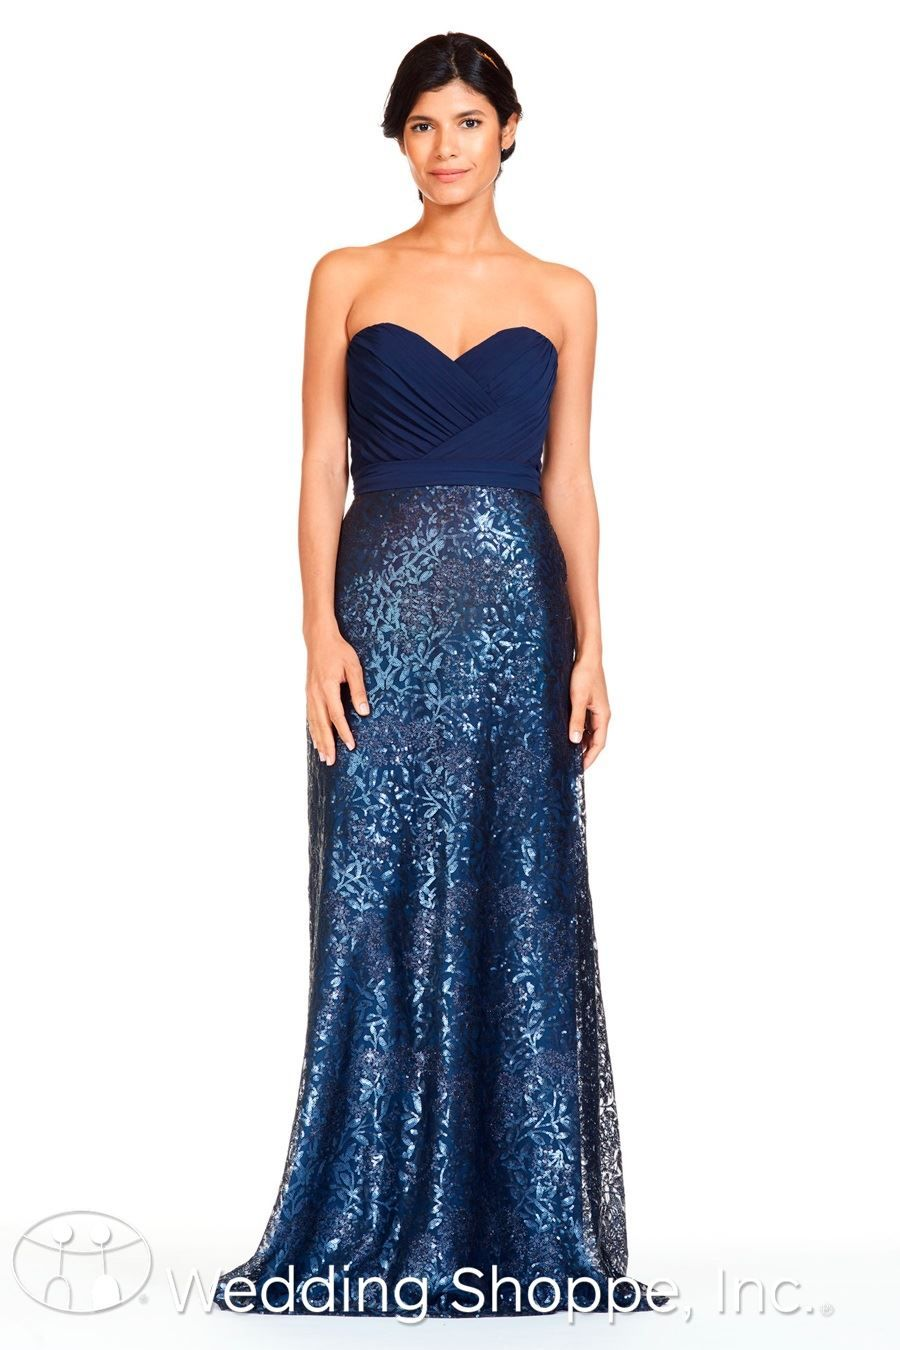 e38a6a361bad3 Luxe chiffon and sequin fabric gown with sweetheart neckline and side  pockets | Bari Jay Bridesmaid Dress 1810 | The Wedding Shoppe